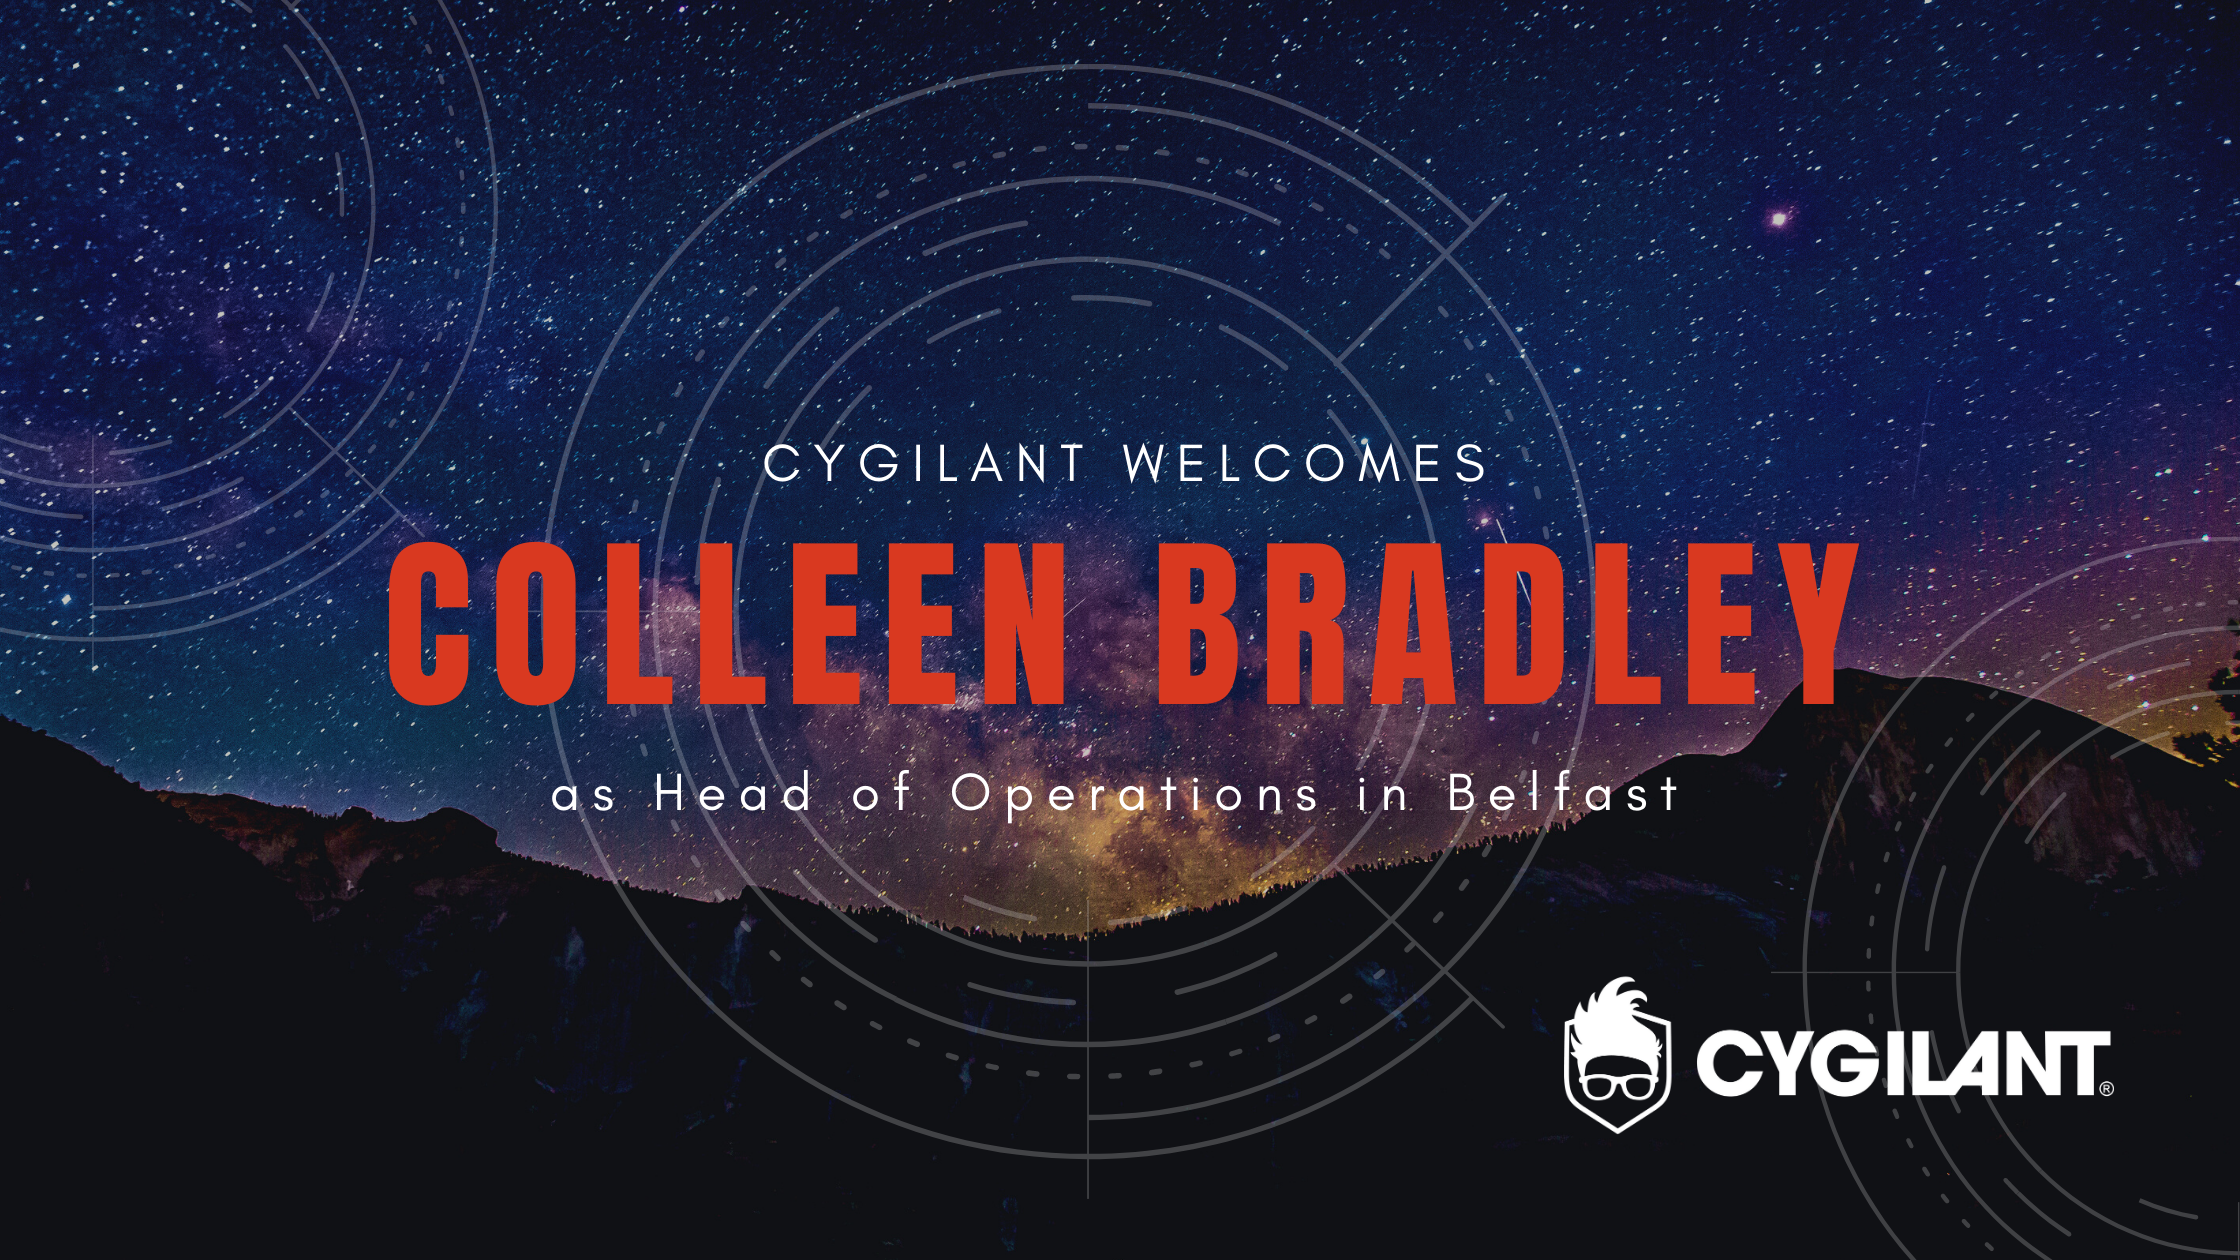 Cygilant Welcomes as Head of Operations in Belfast